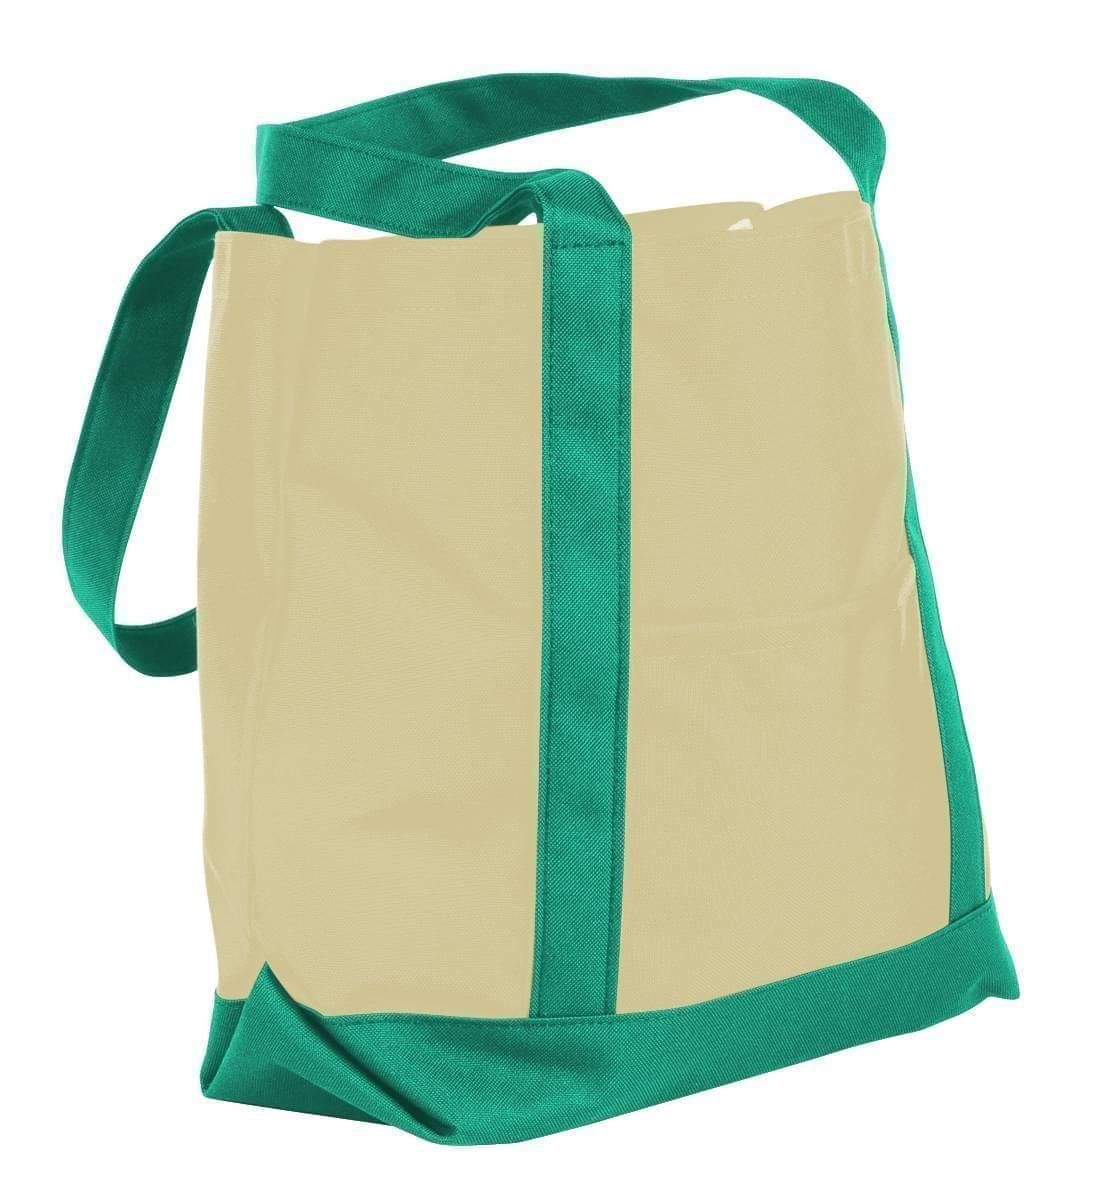 USA Made Canvas Fashion Tote Bags, Natural-Kelly Green, XAACL1UAKH